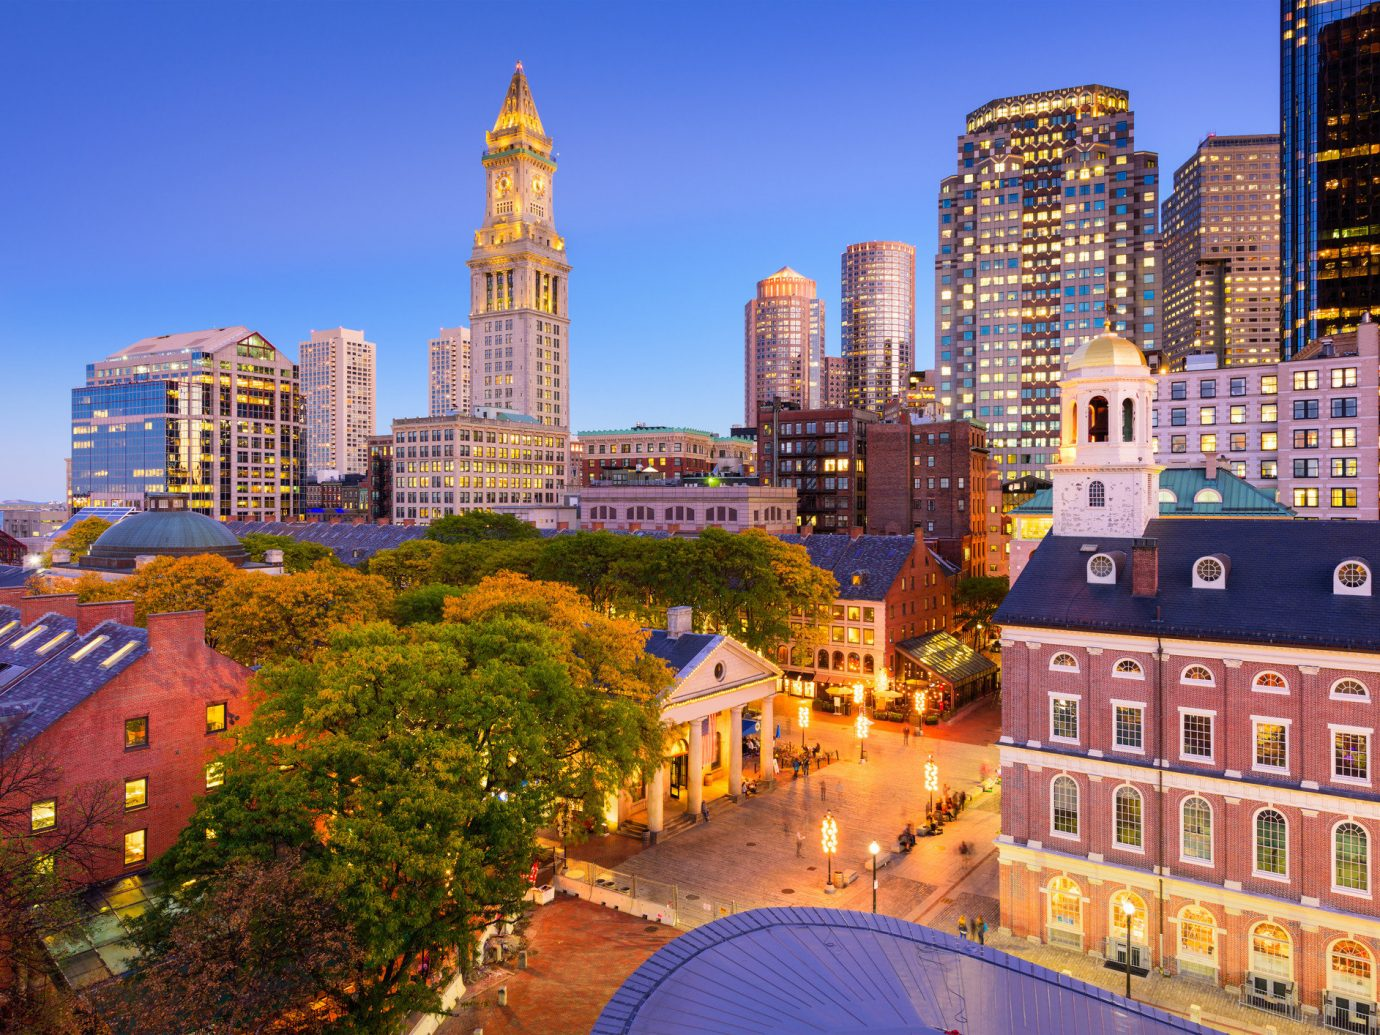 Aerial view of Boston at night.